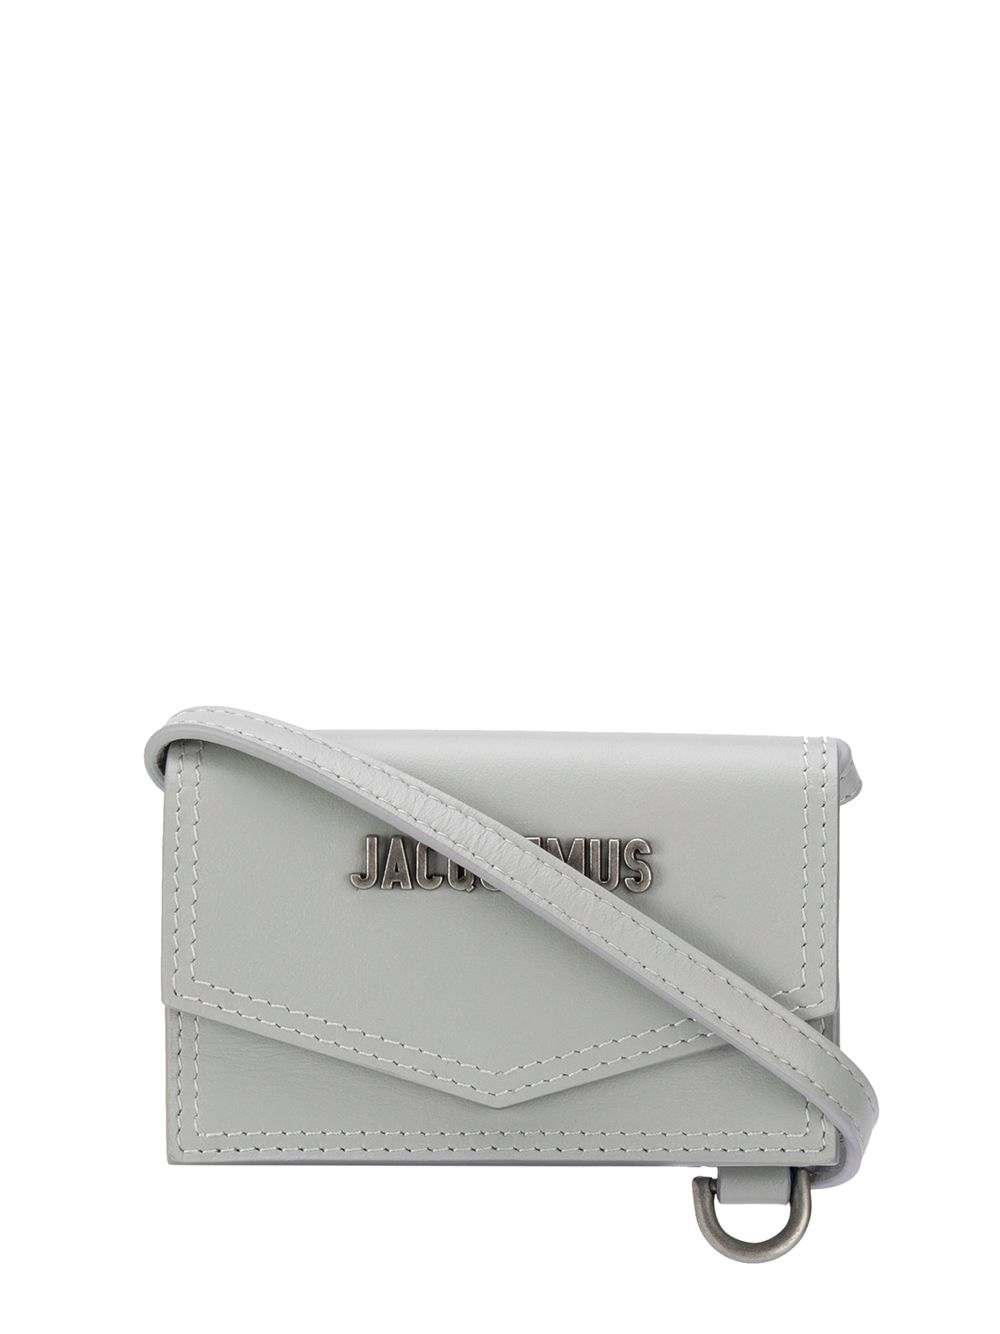 Le Porte Azur Leather Wallet